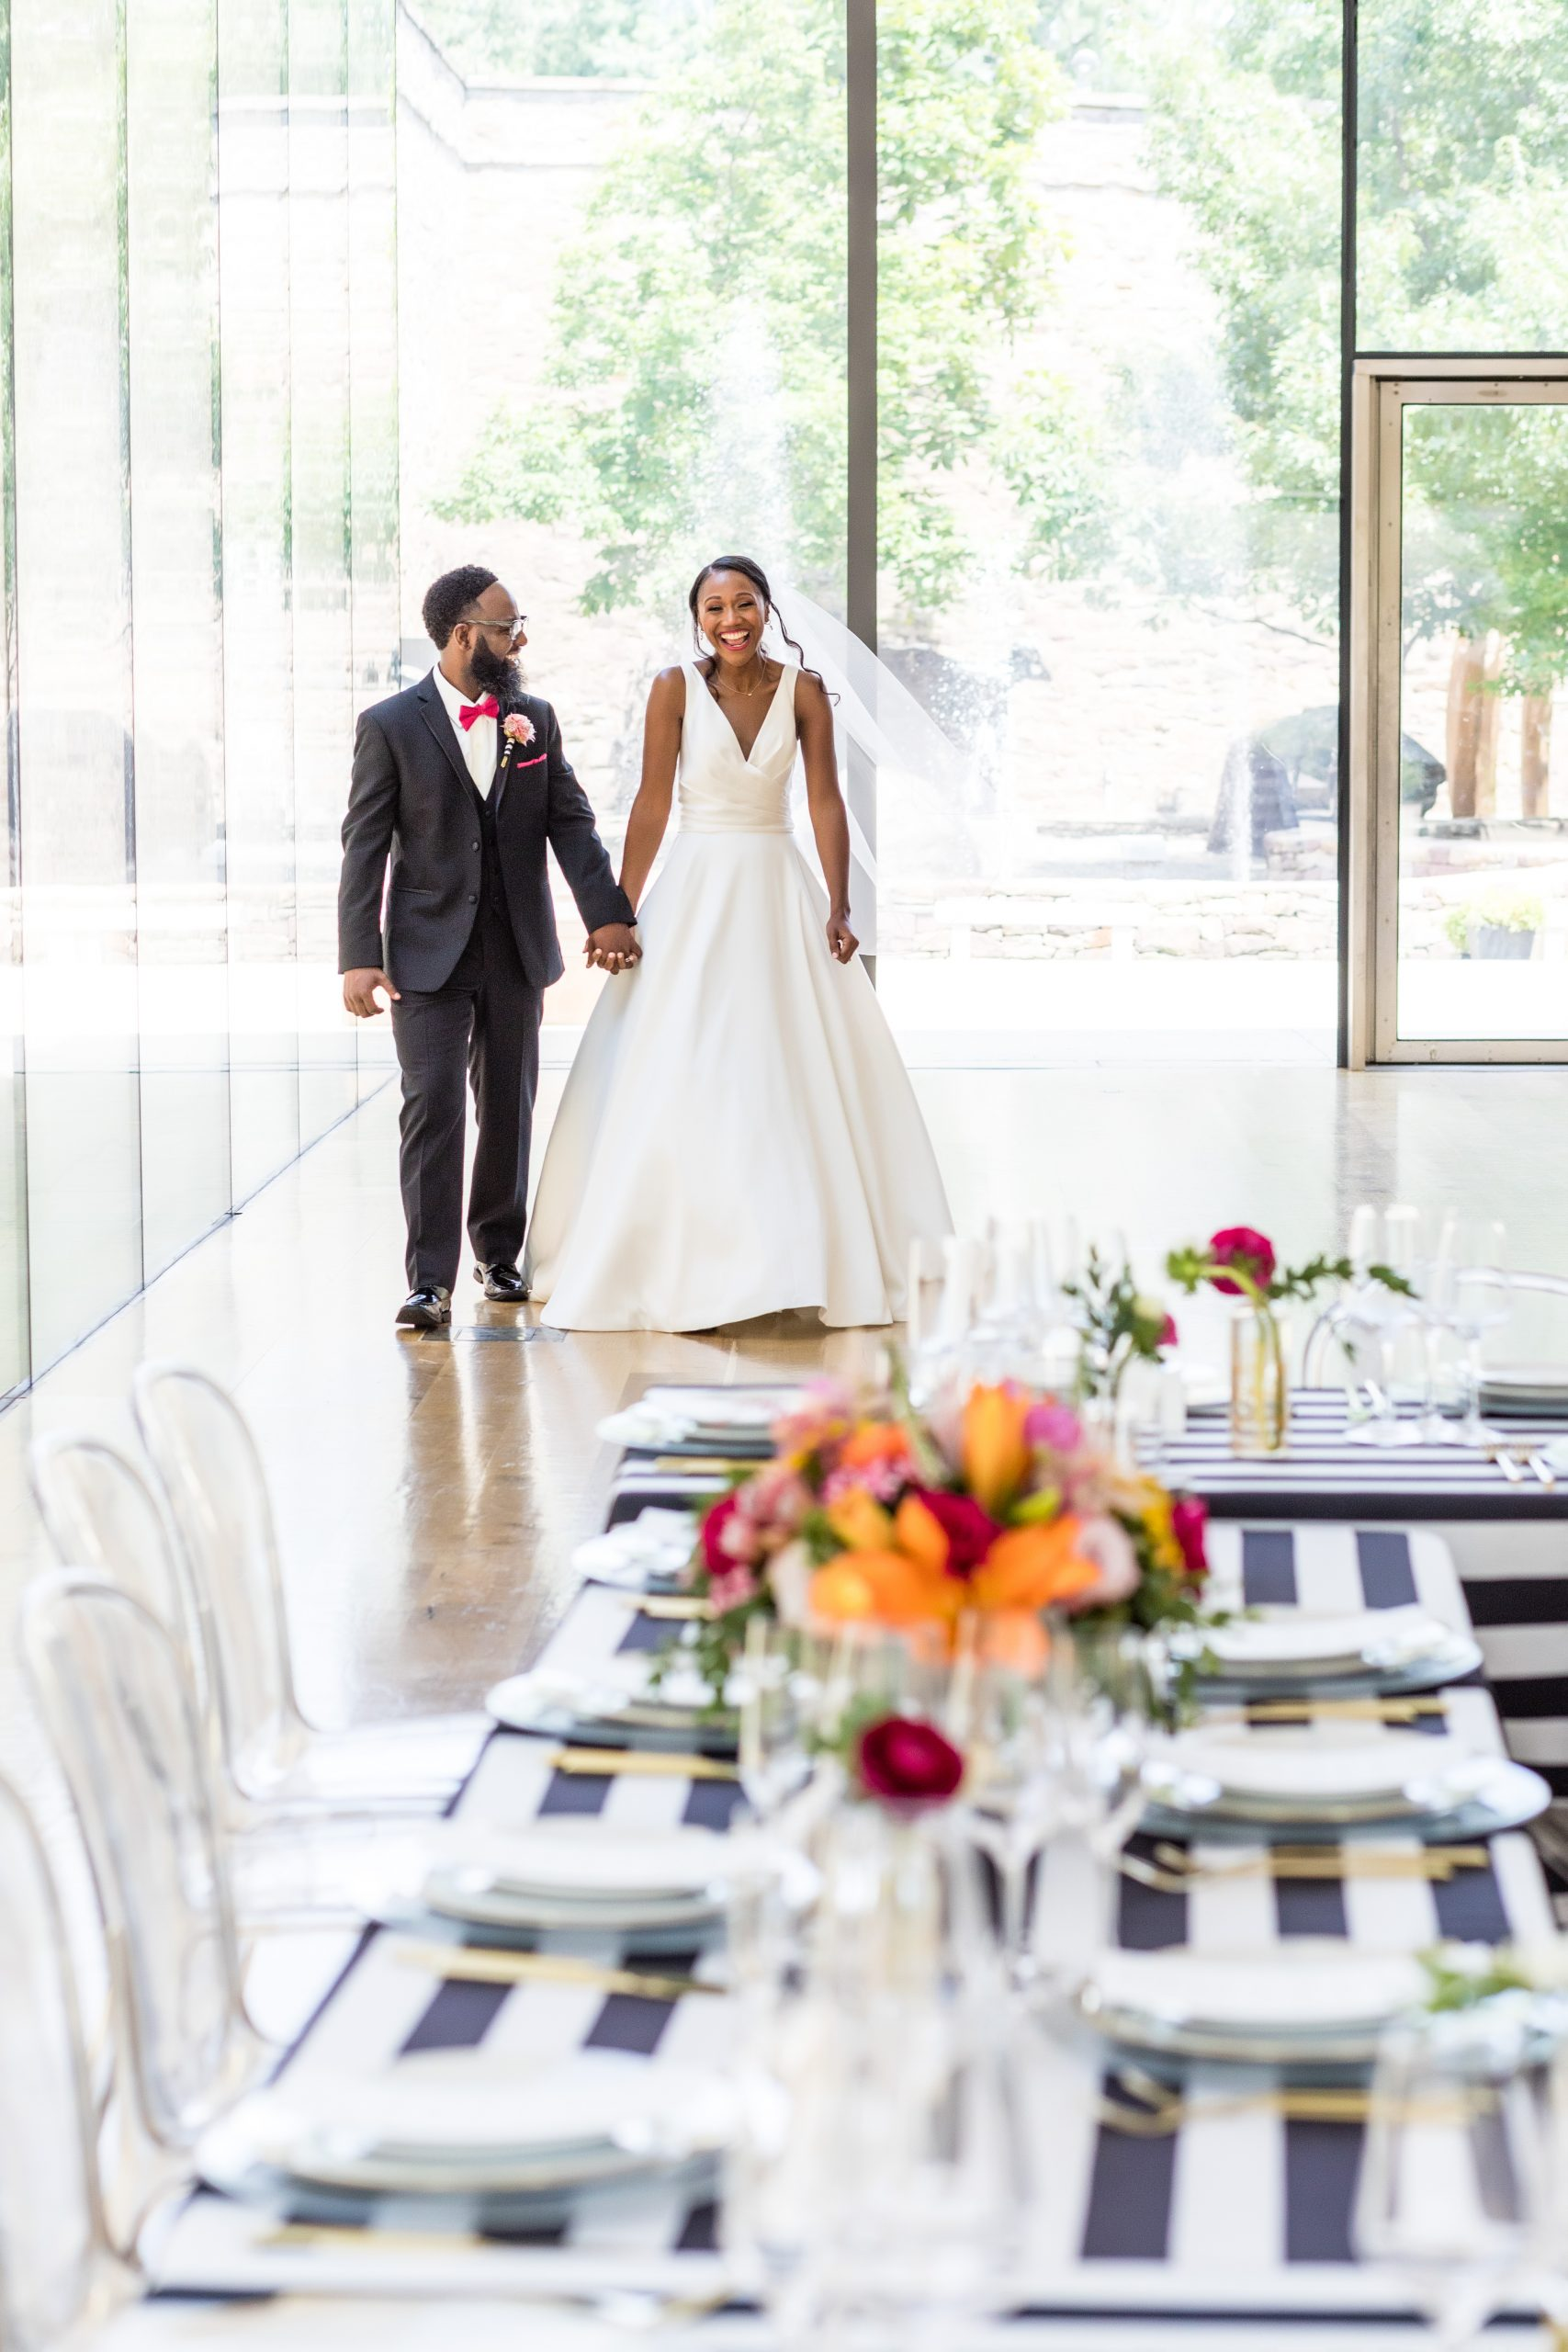 the excitement on the brides face says it all at the Michener Museum styled urban contemporary shoot for Ashley Gerrity Photography this past Summer. Featured on Dream Weddings.